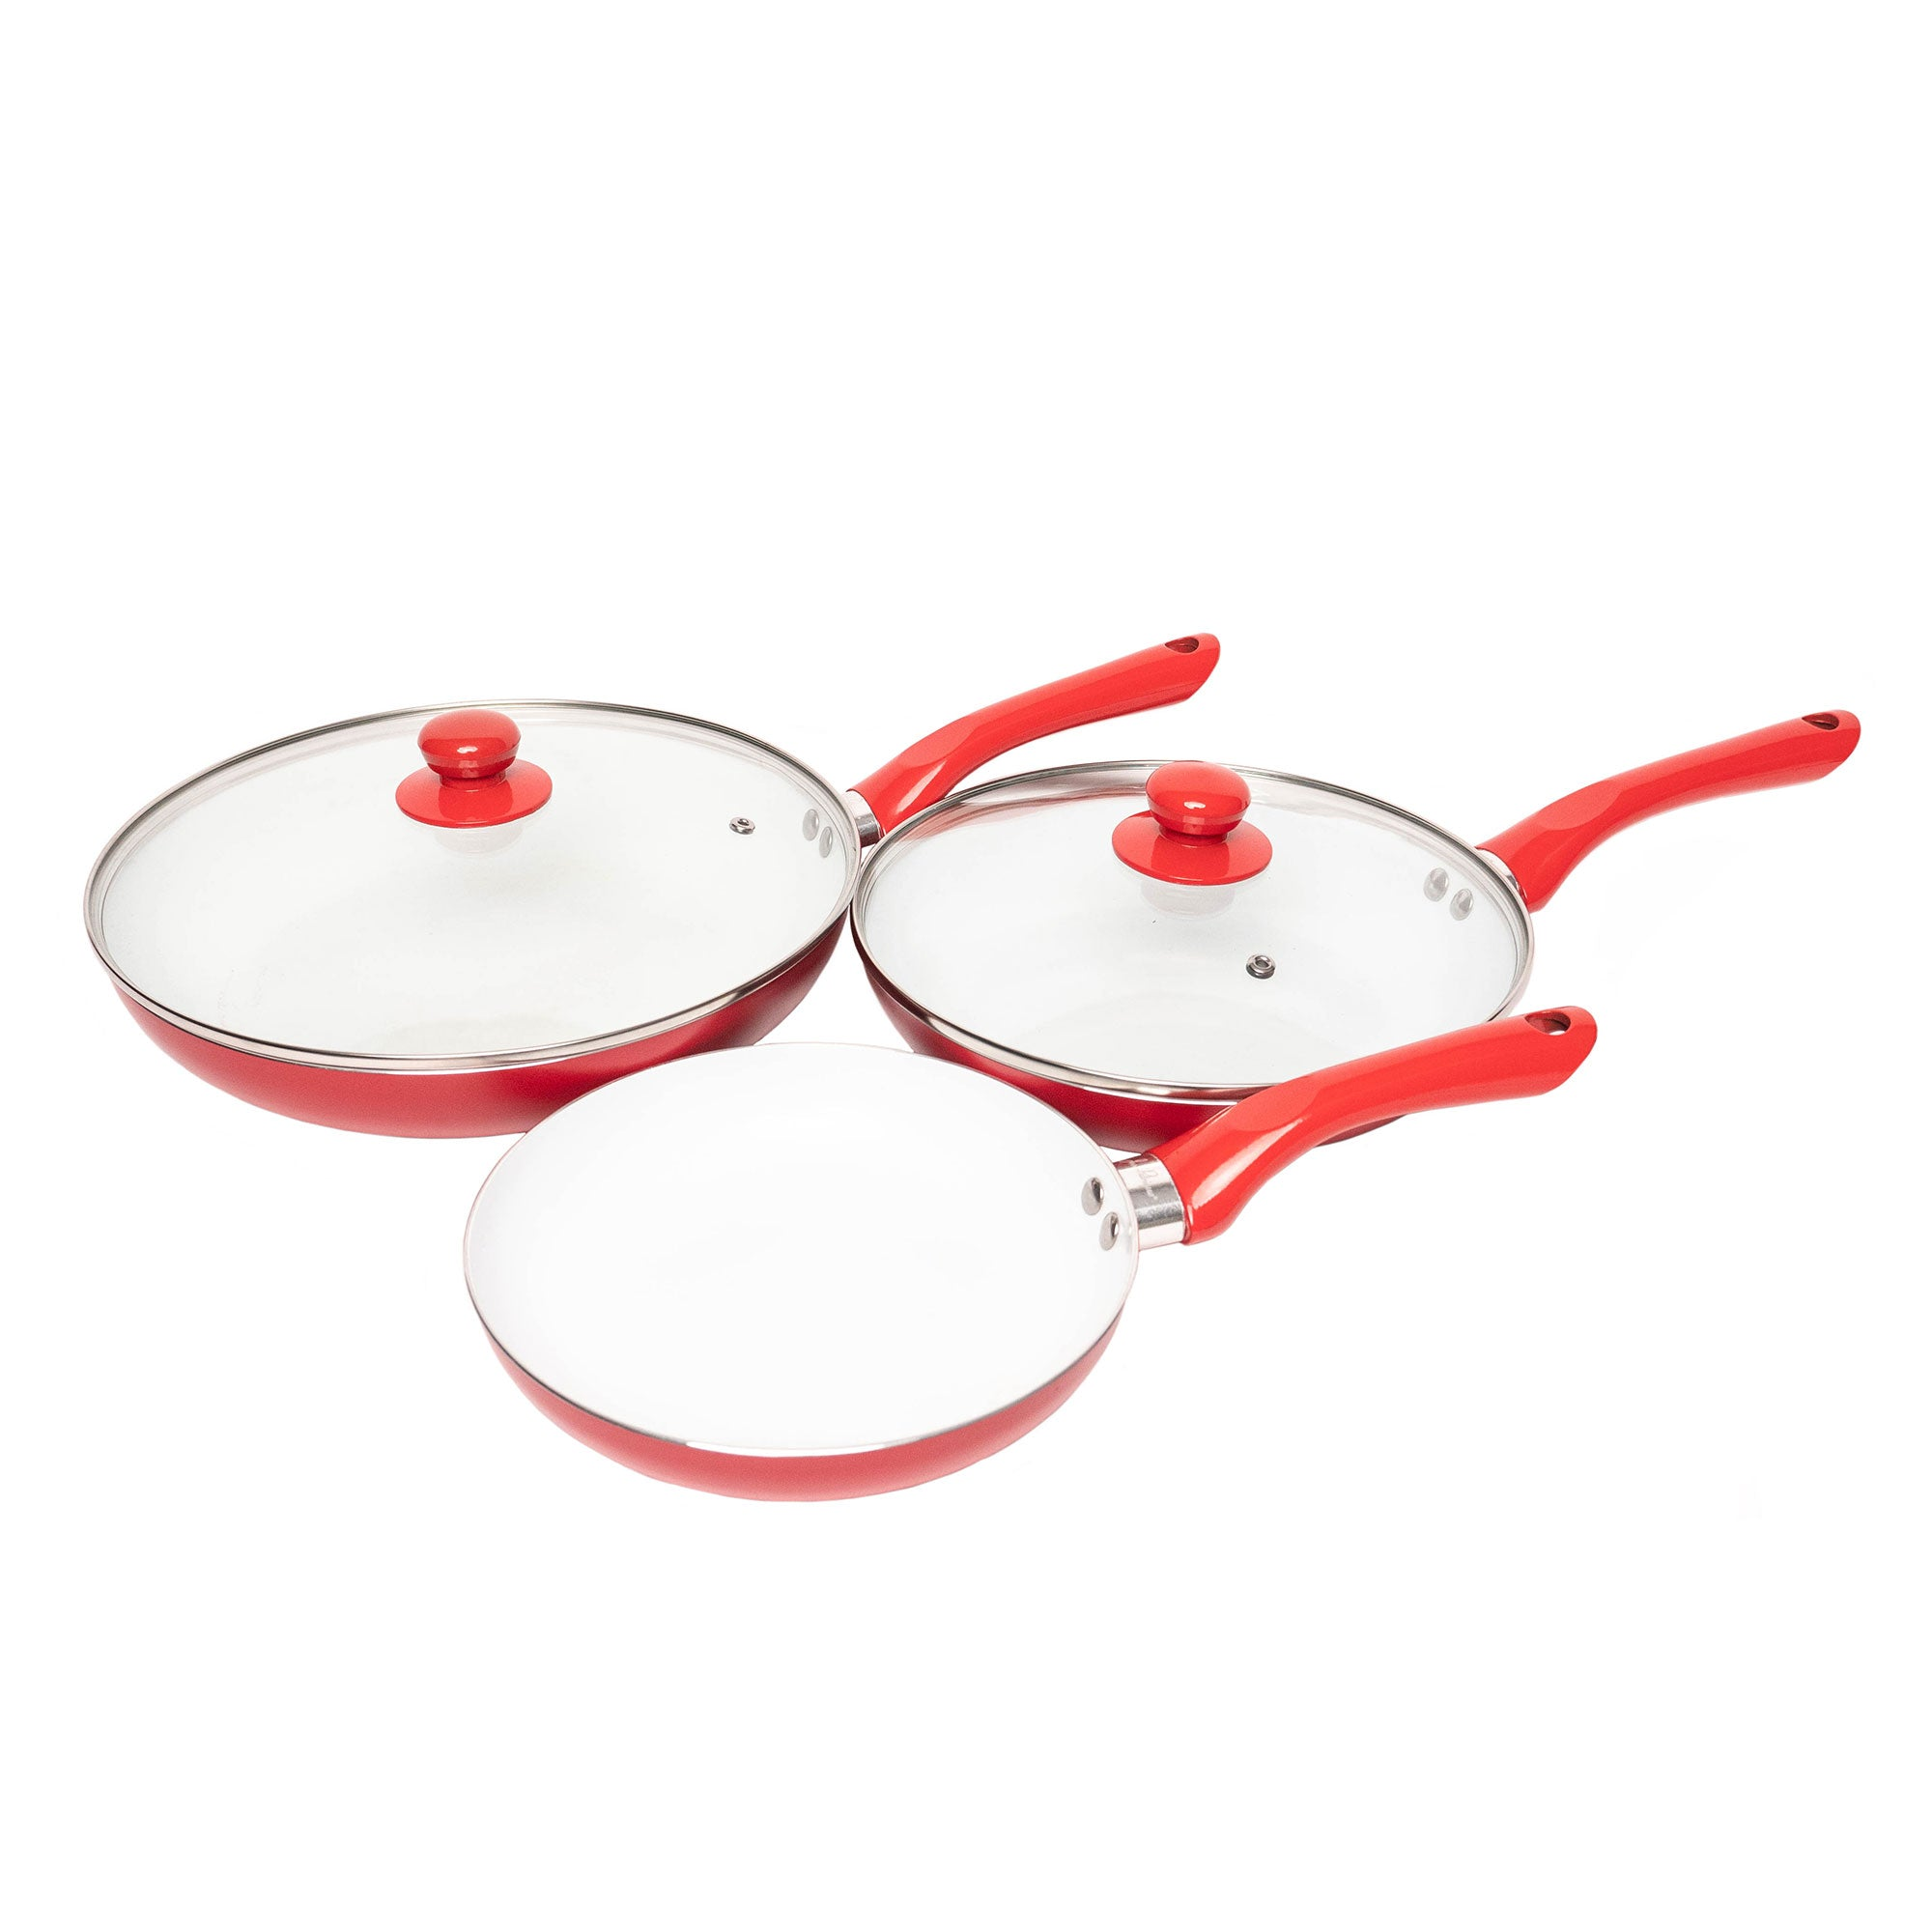 Bio Supreme Ceramic Frying Pan Set